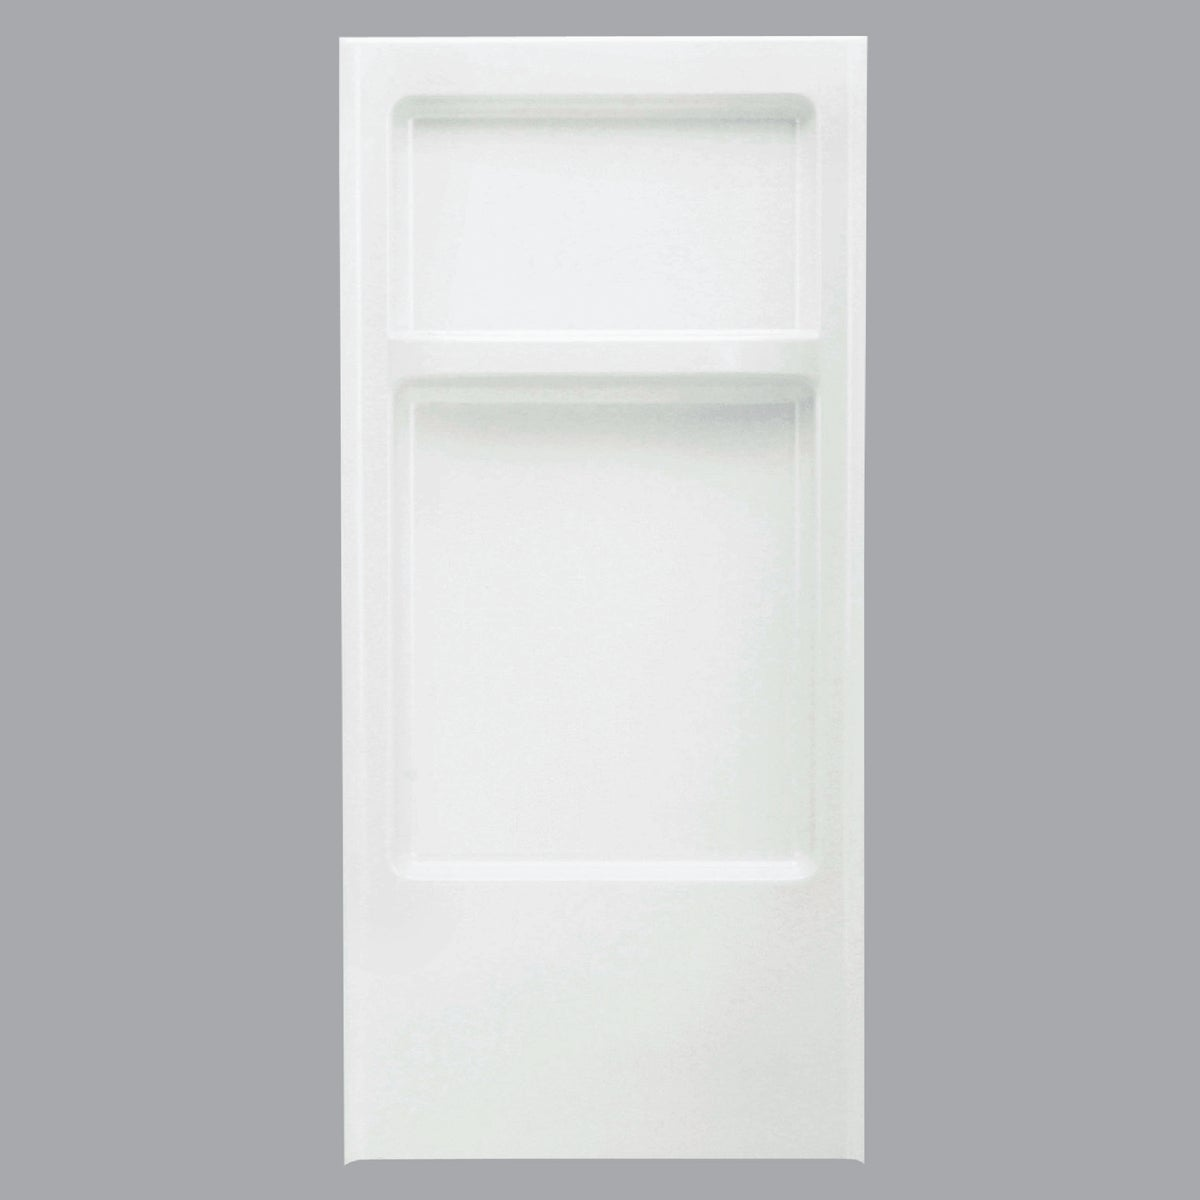 "32"" WHT SHOWER BACKWALL - 62012100-0 by Sterling Pbg/vikrell"